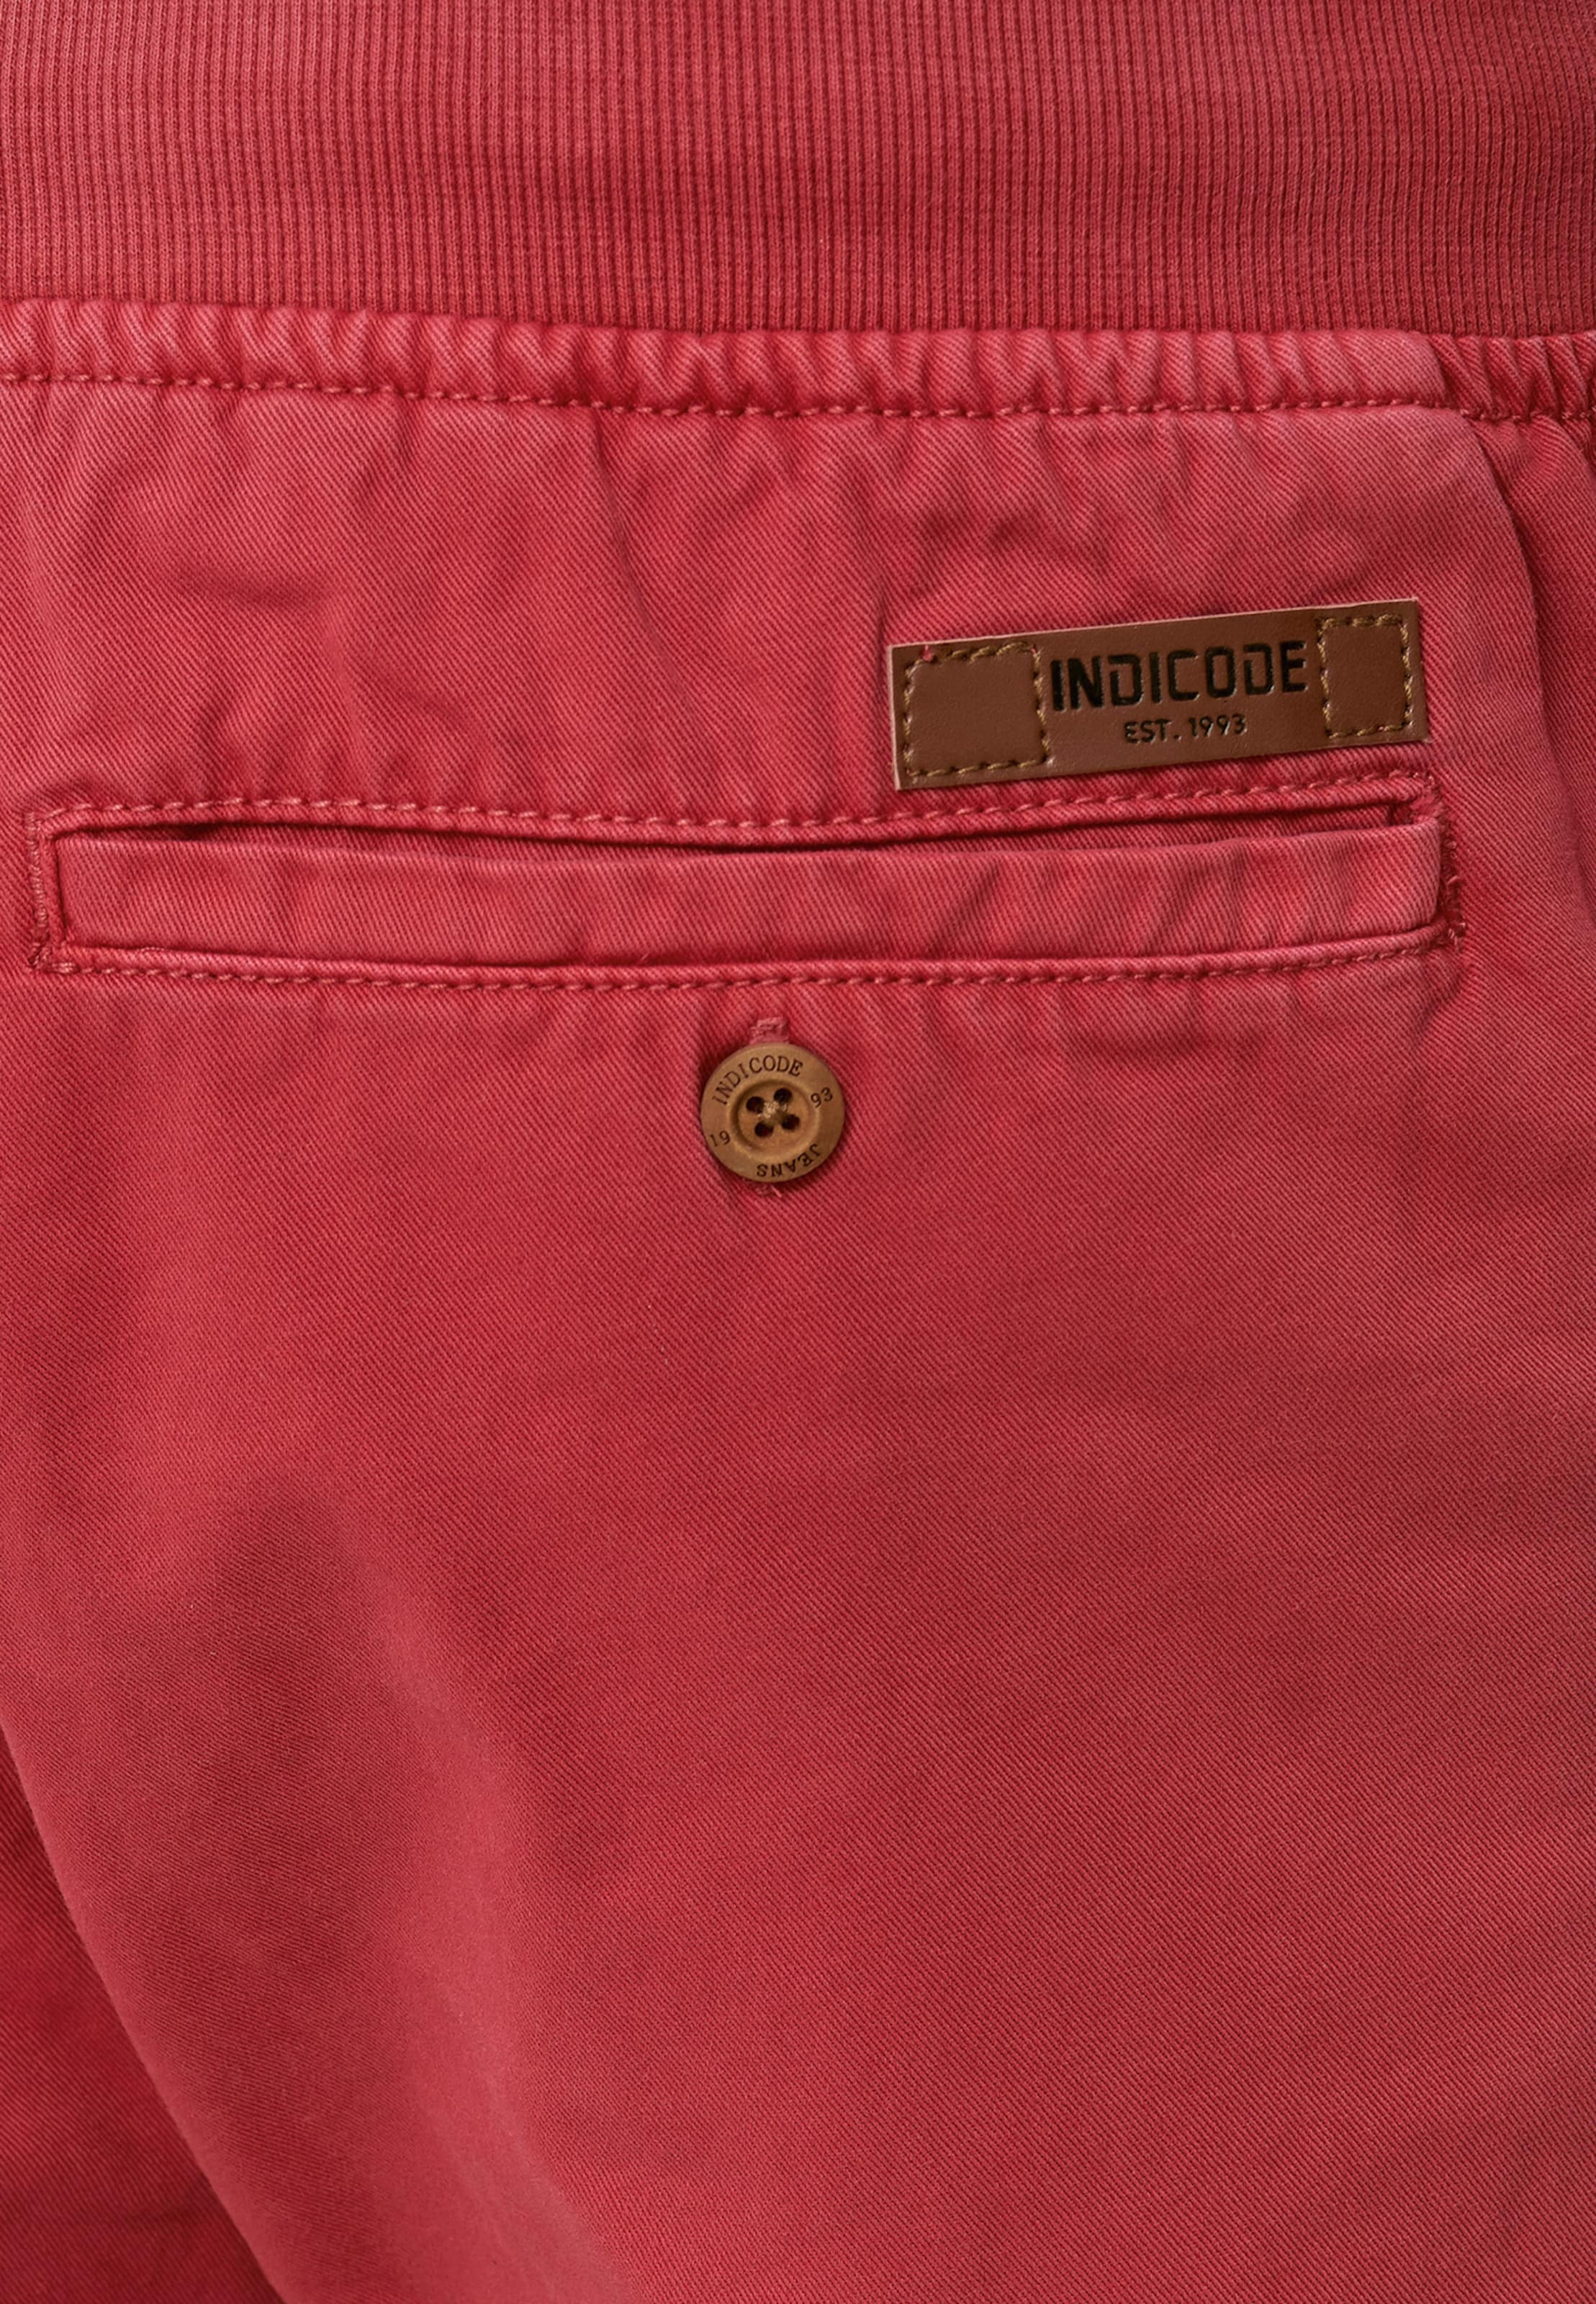 Jeans 'carver' Shorts Pastellrot Indicode In xWrCBoed